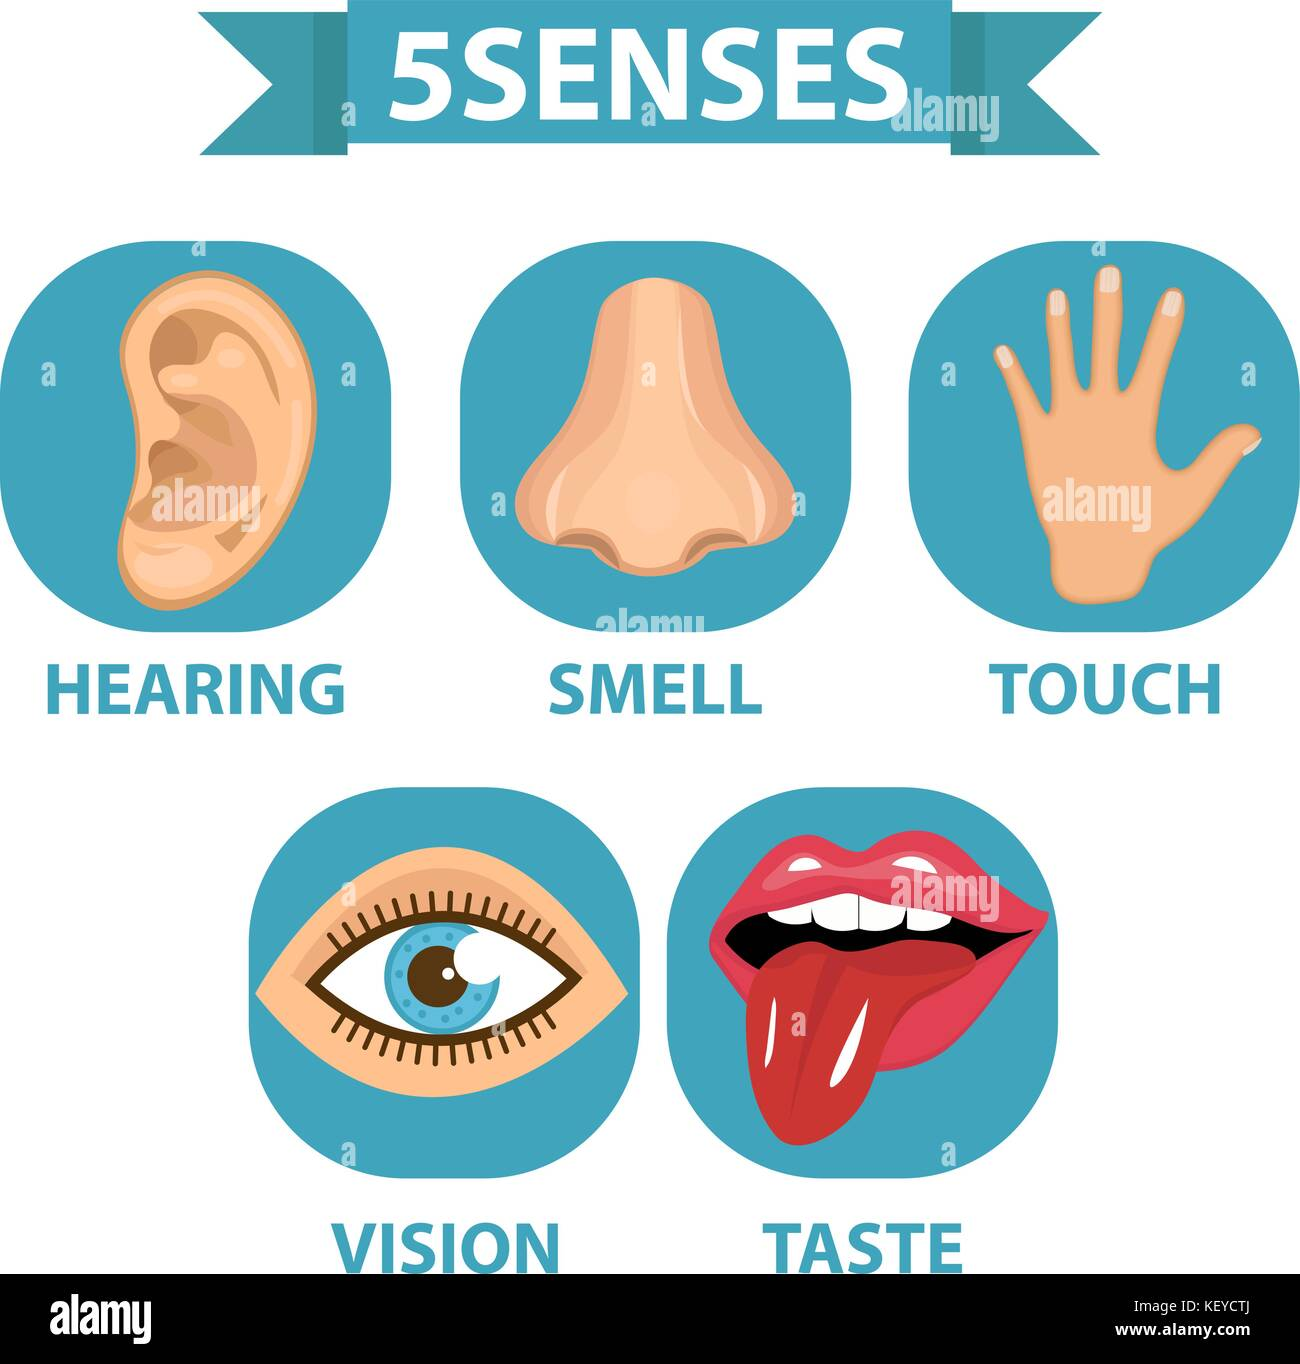 5 Senses Icon Set Touch Smell Hearing Vision Taste